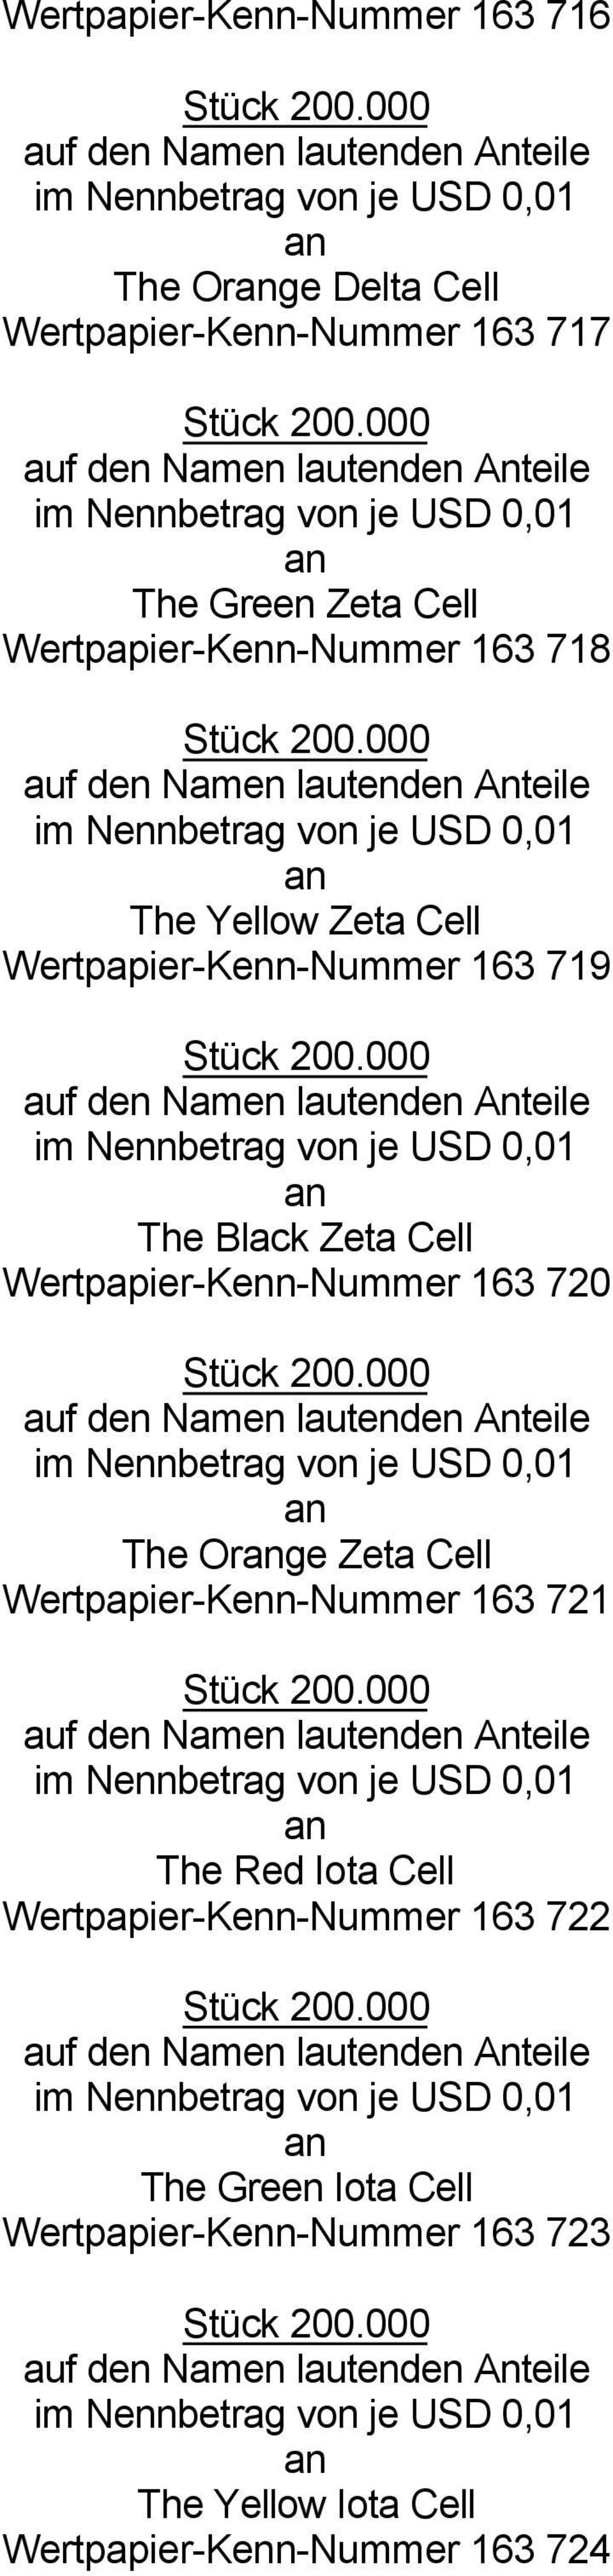 Wertpapier-Kenn-Nummer 163 720 The Orge Zeta Cell Wertpapier-Kenn-Nummer 163 721 The Red Iota Cell